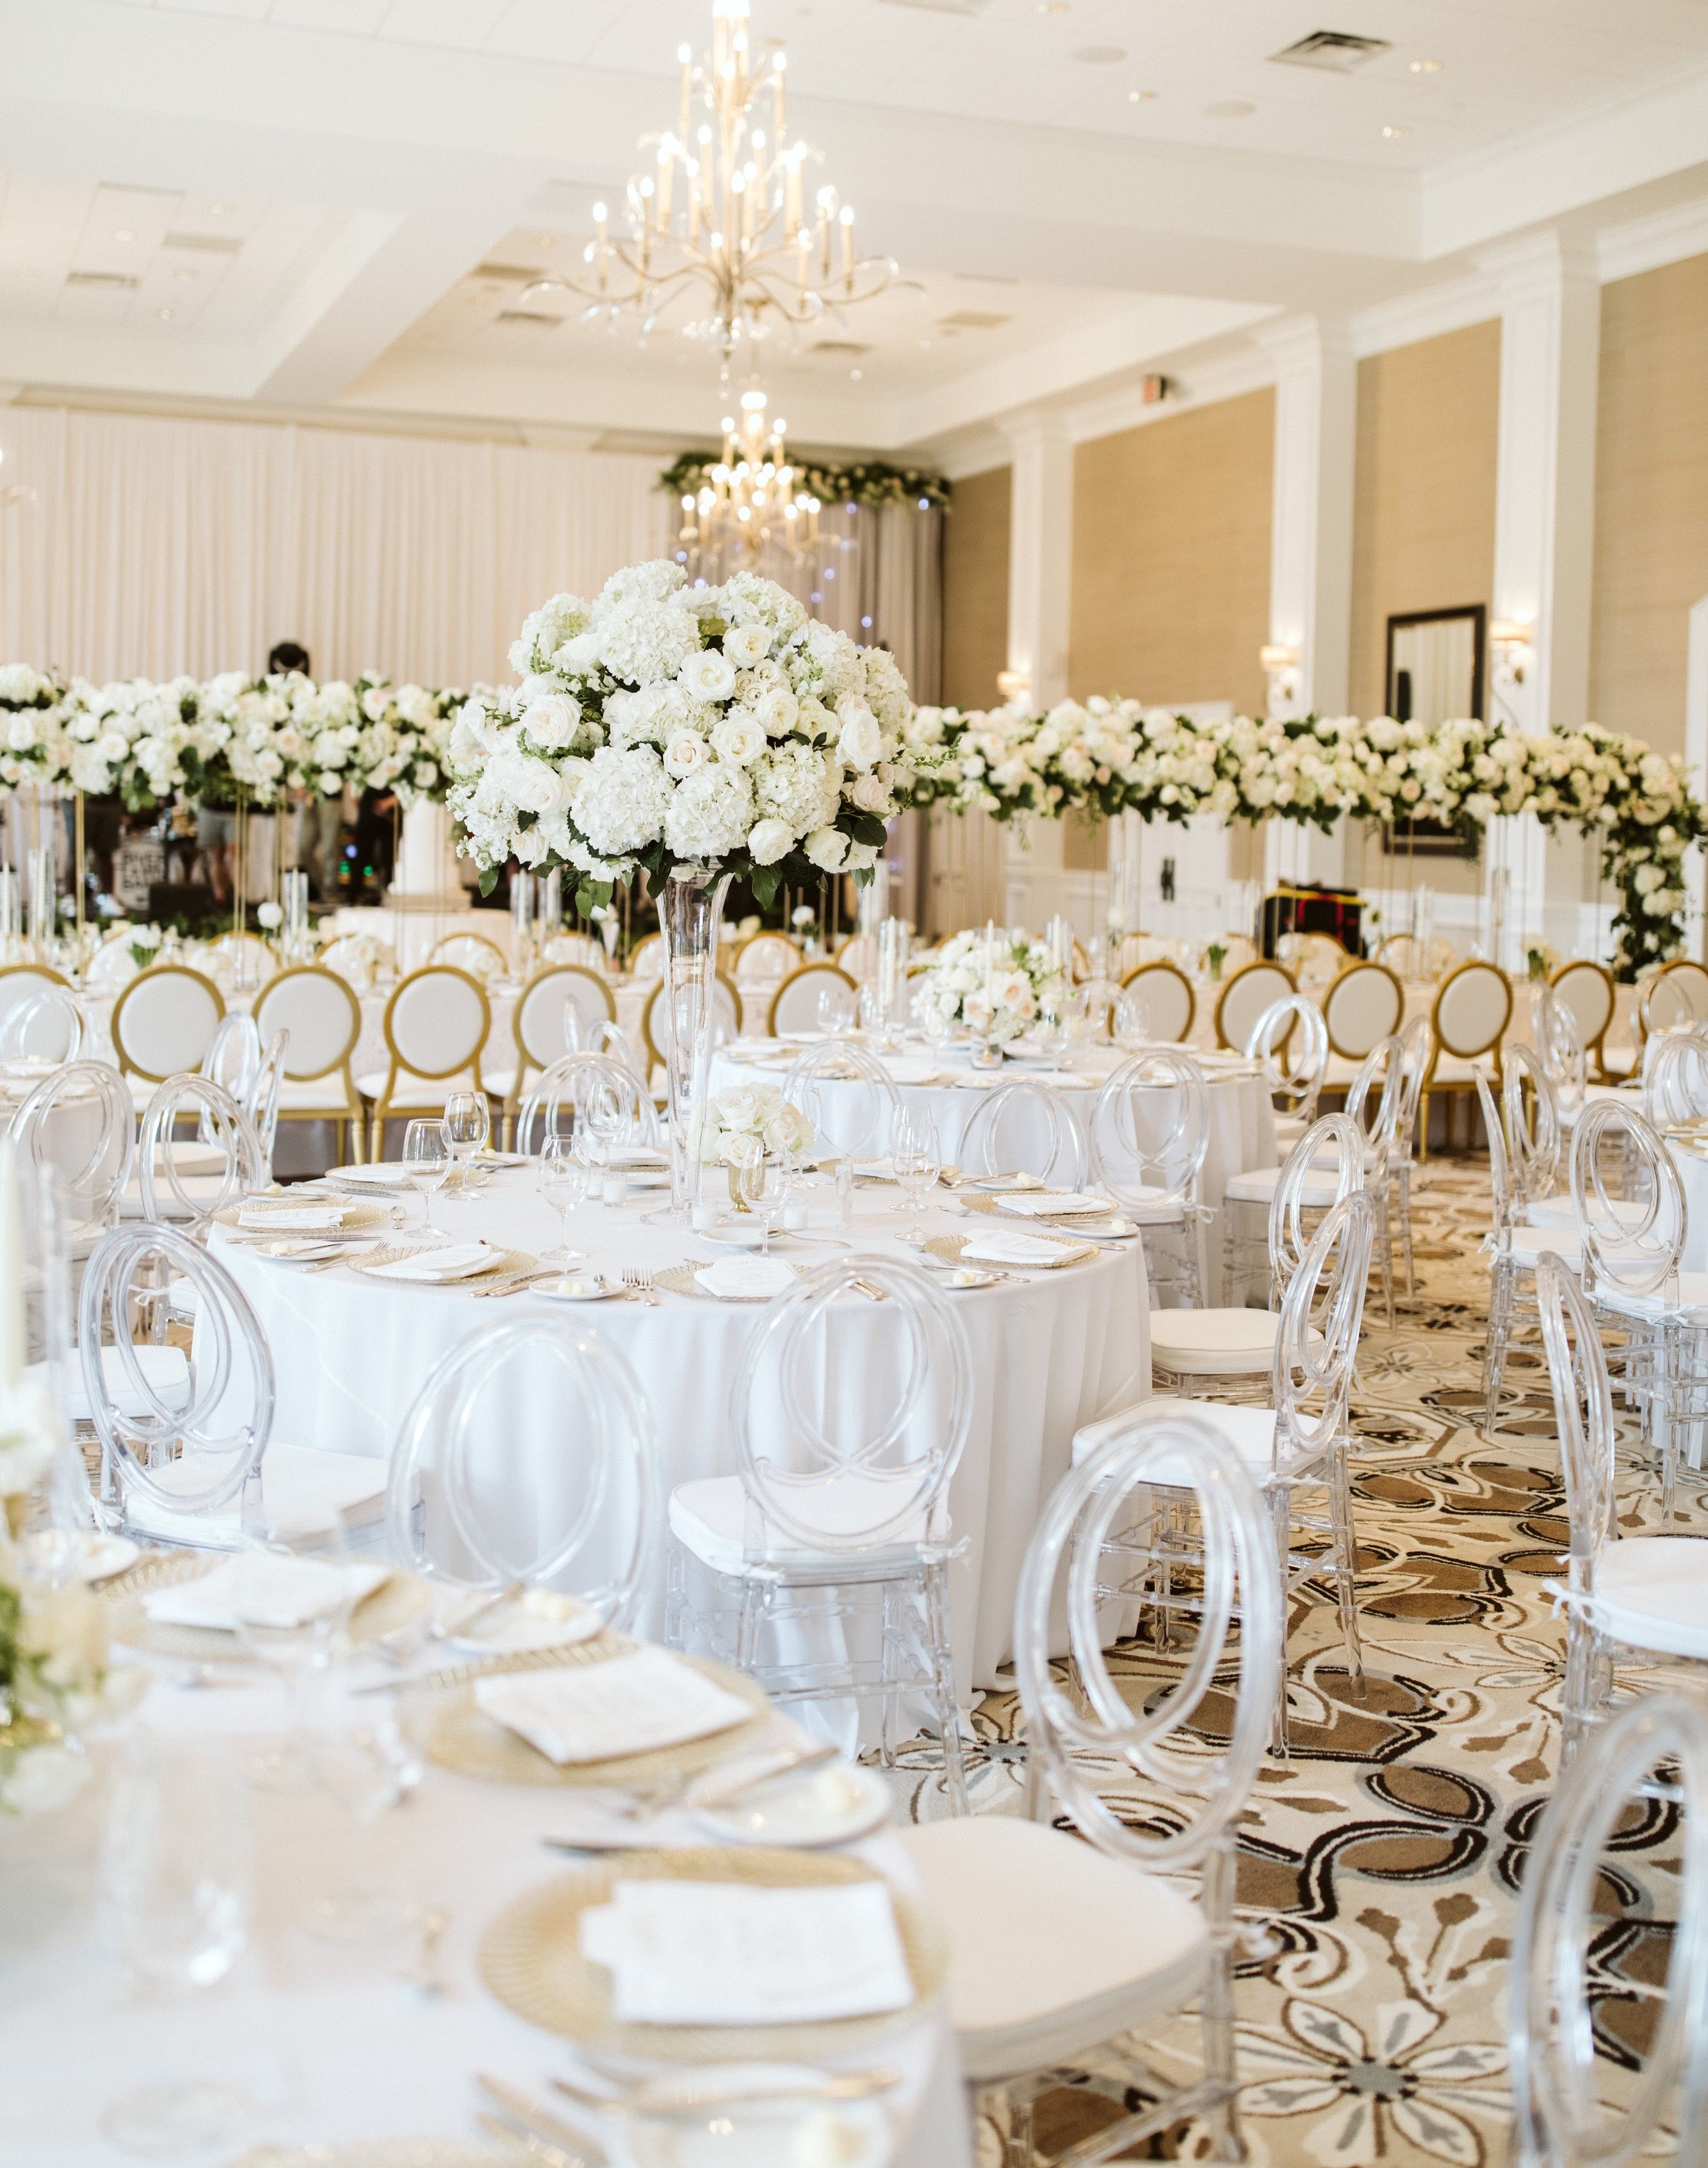 Modern Elegance For This Grand Ballroom Wedding Reception Included All White Flowers Wedding Styles Themes Ballroom Wedding Reception Wedding Reception Chairs